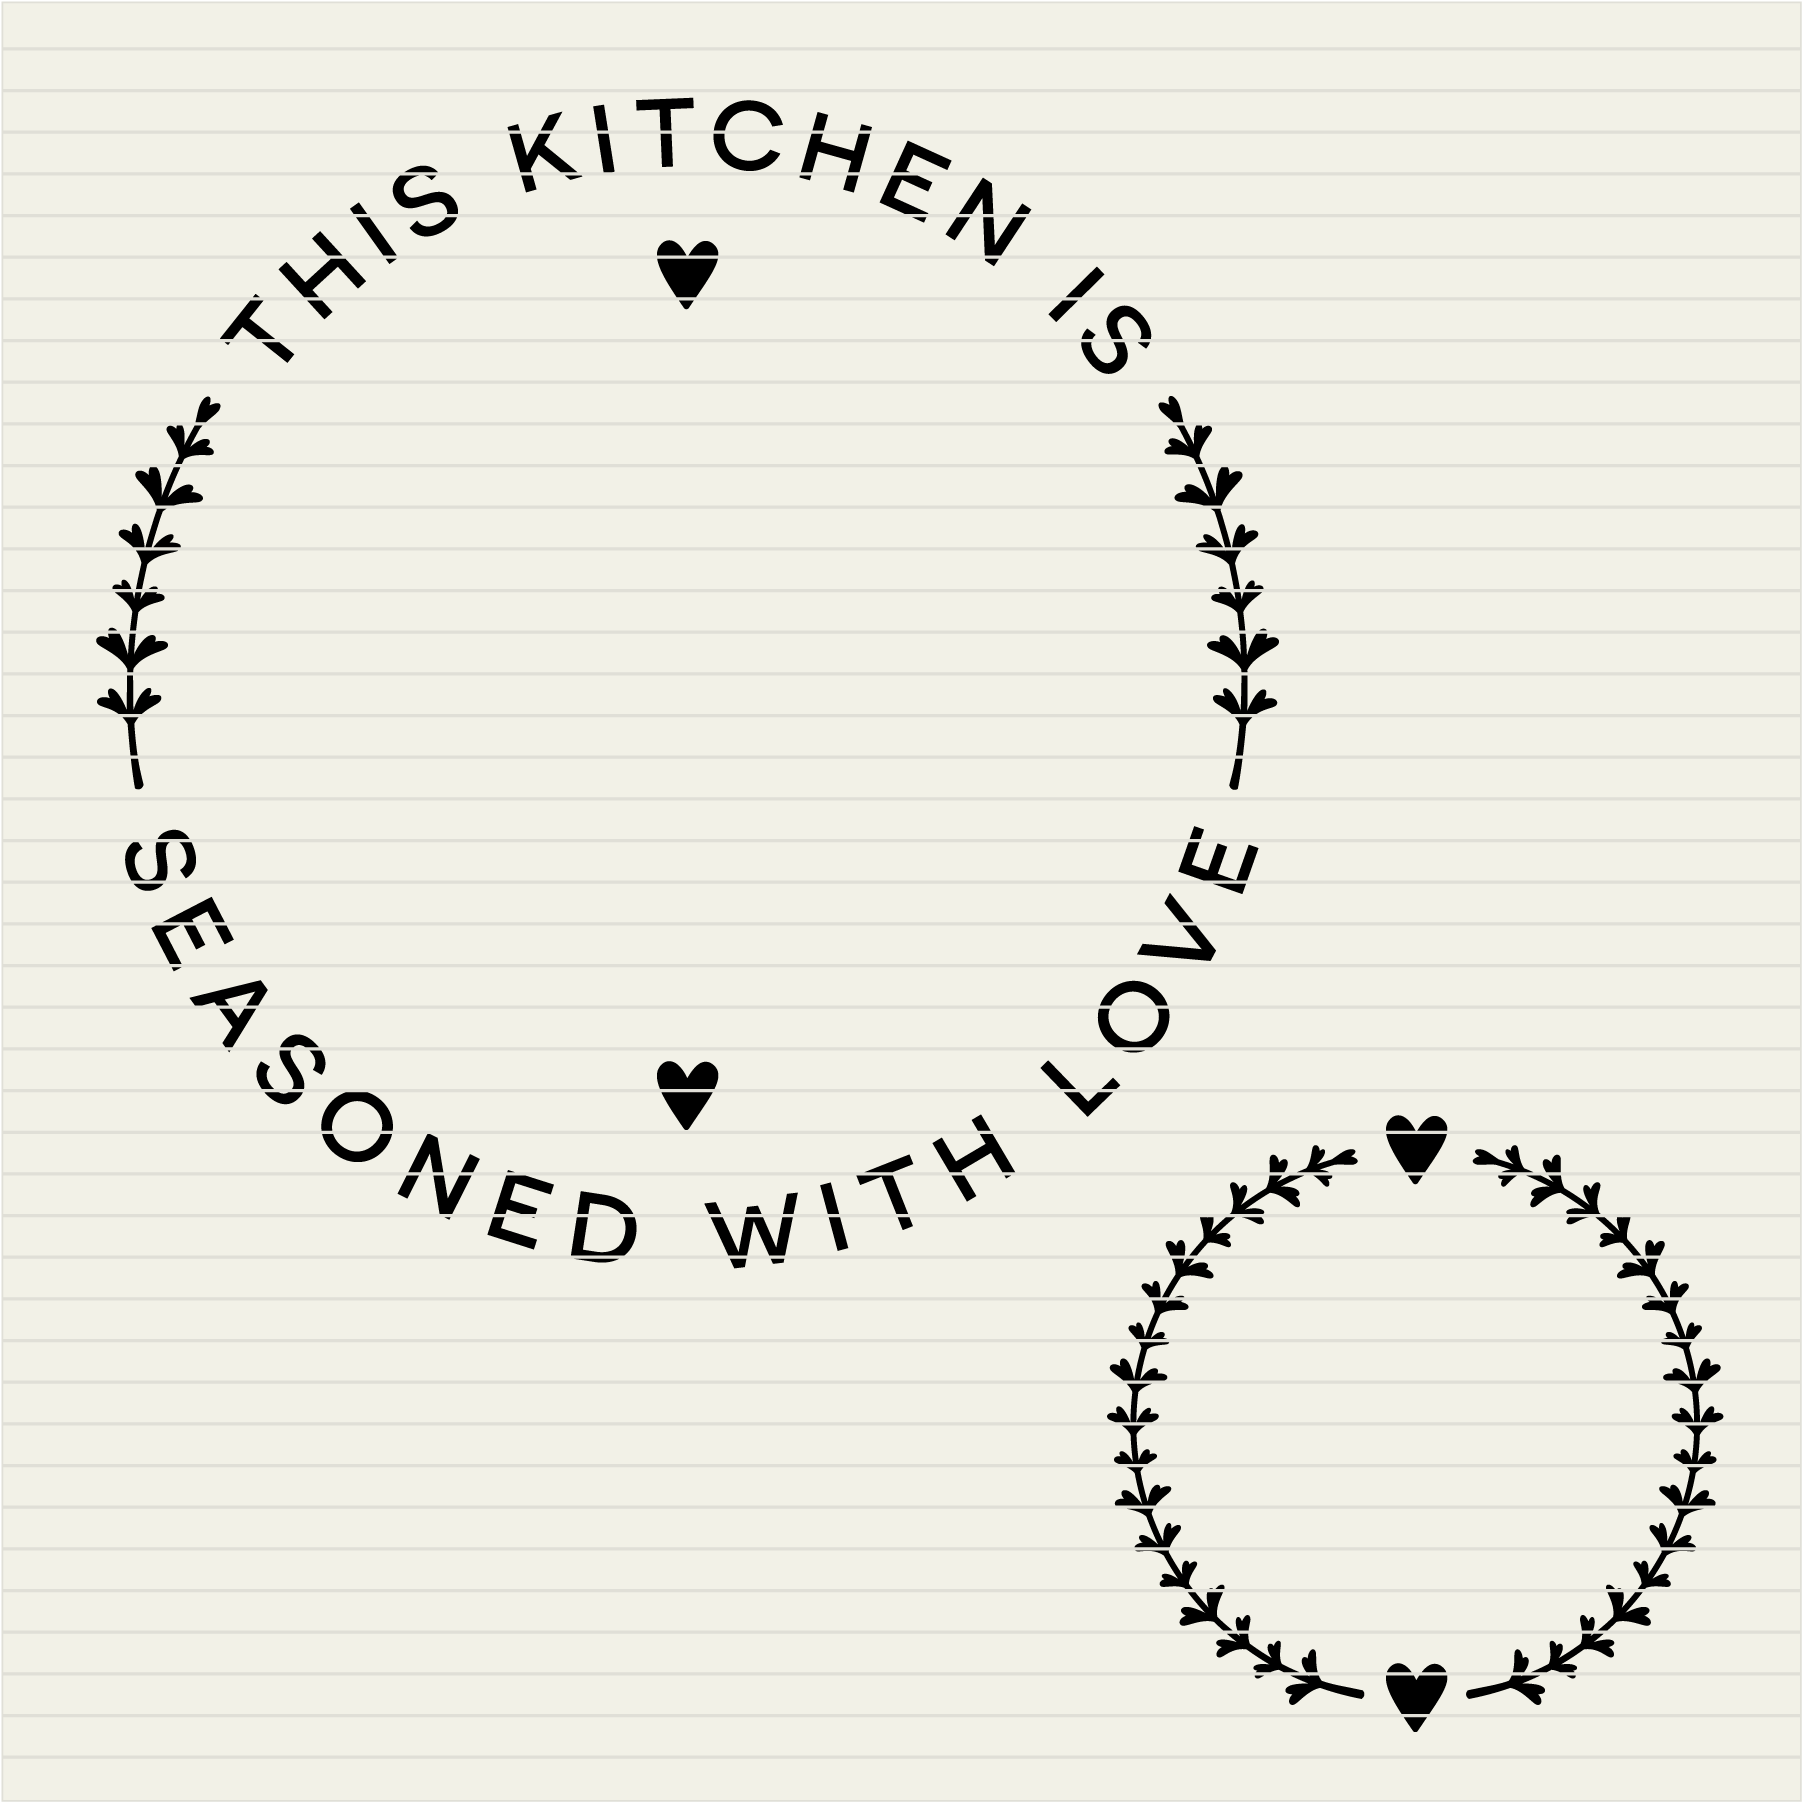 Kitchen Seasoned with Love | Personalize SVG monogram frame example image 3